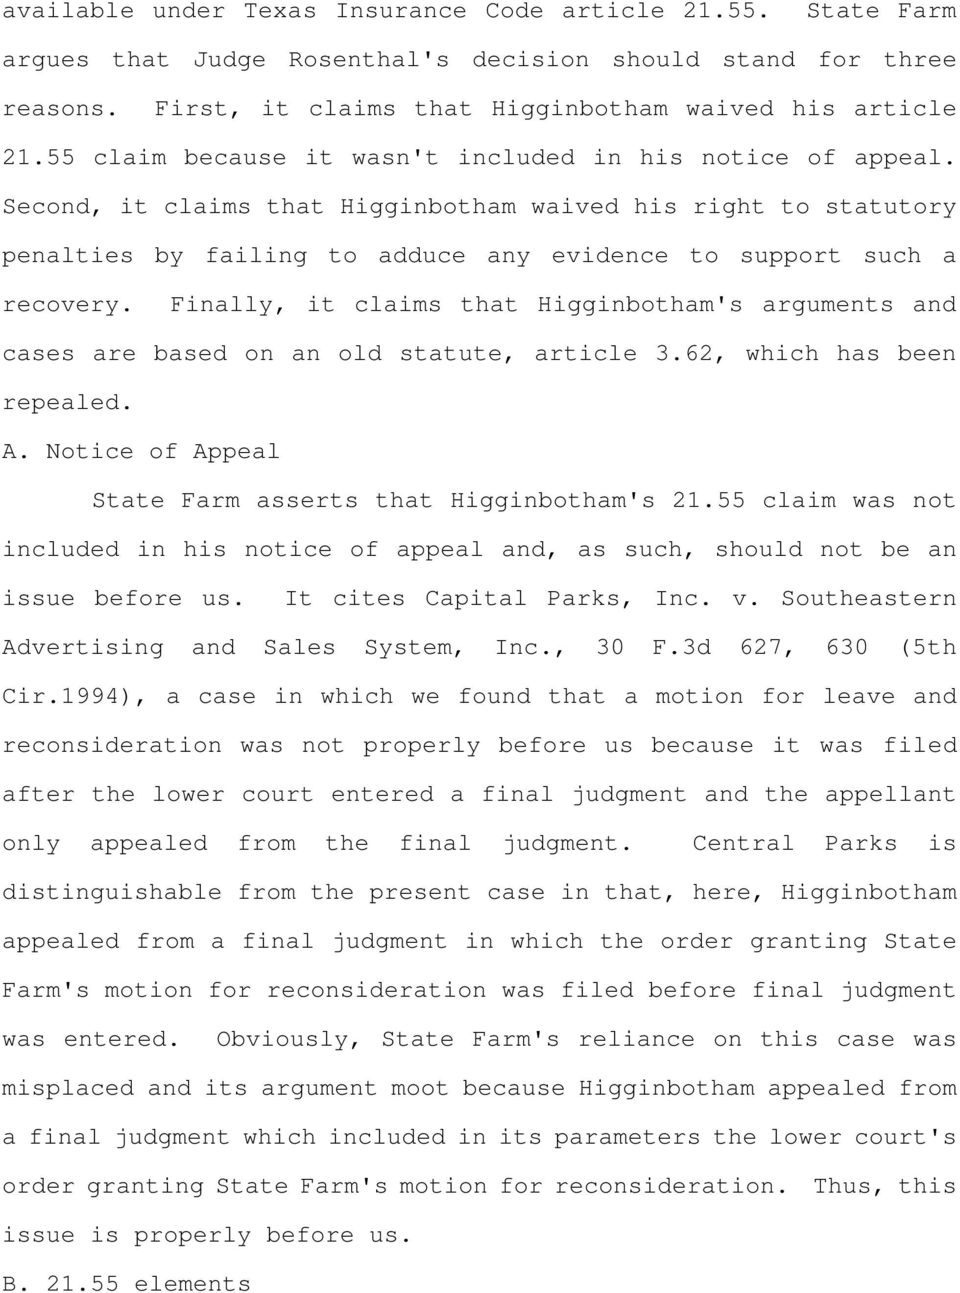 Finally, it claims that Higginbotham's arguments and cases are based on an old statute, article 3.62, which has been repealed. A. Notice of Appeal State Farm asserts that Higginbotham's 21.